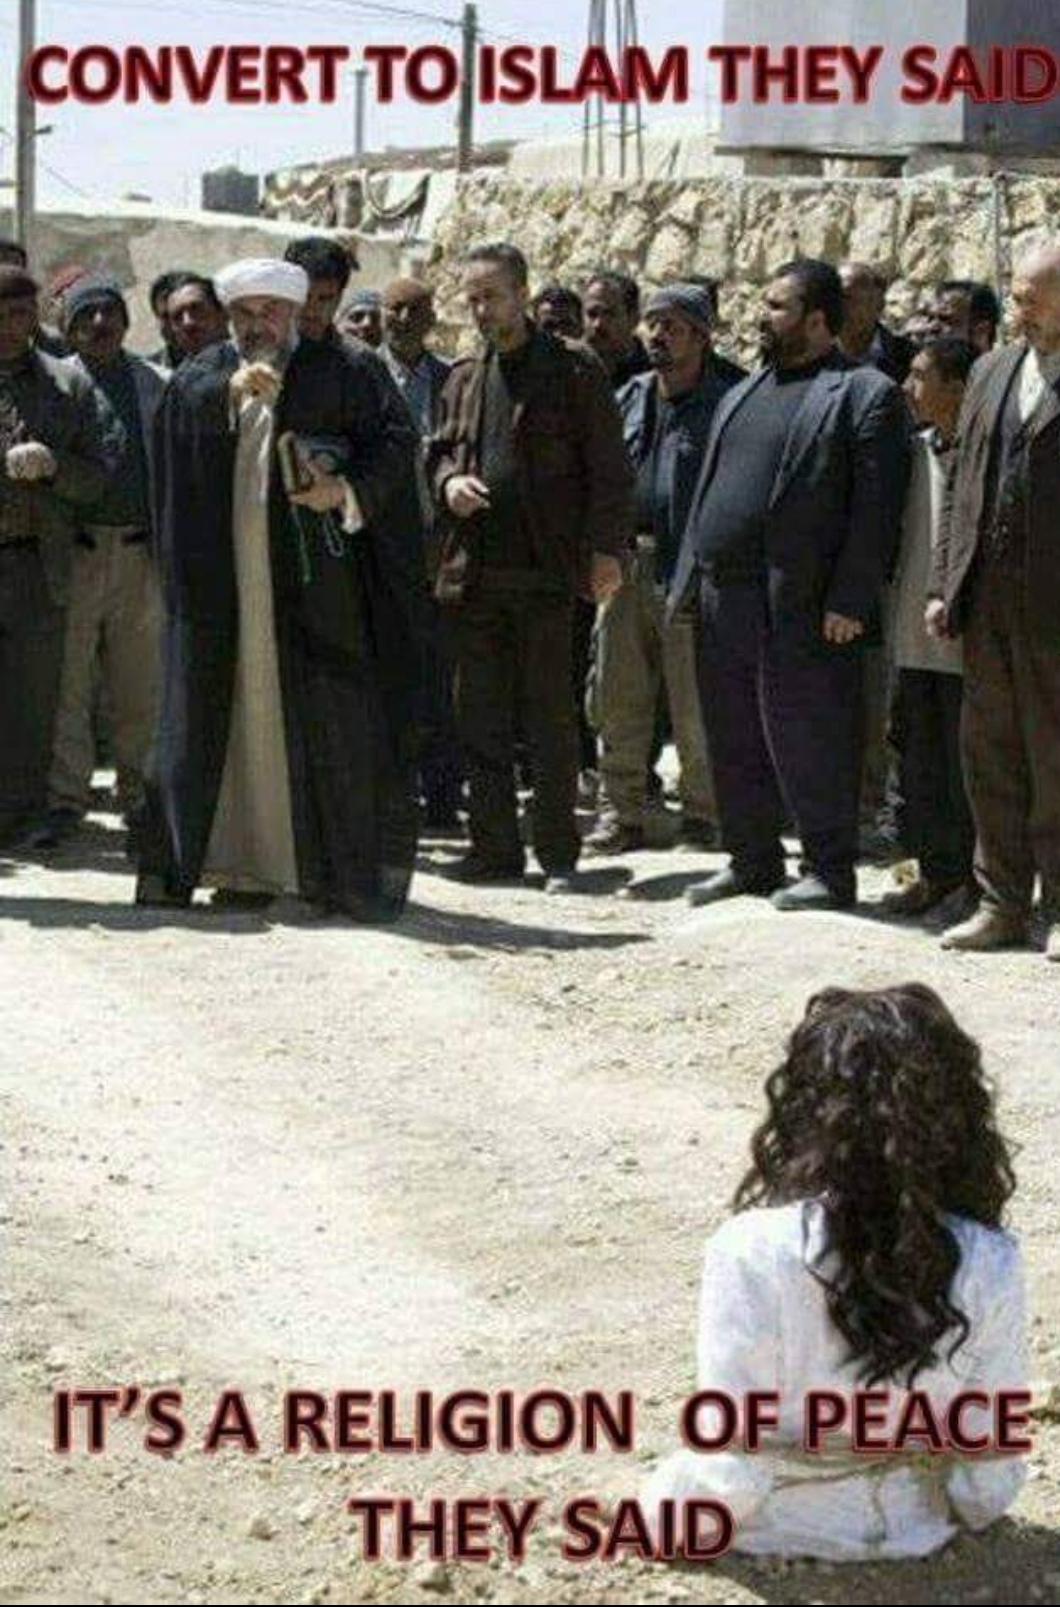 women rights stoned peace islam